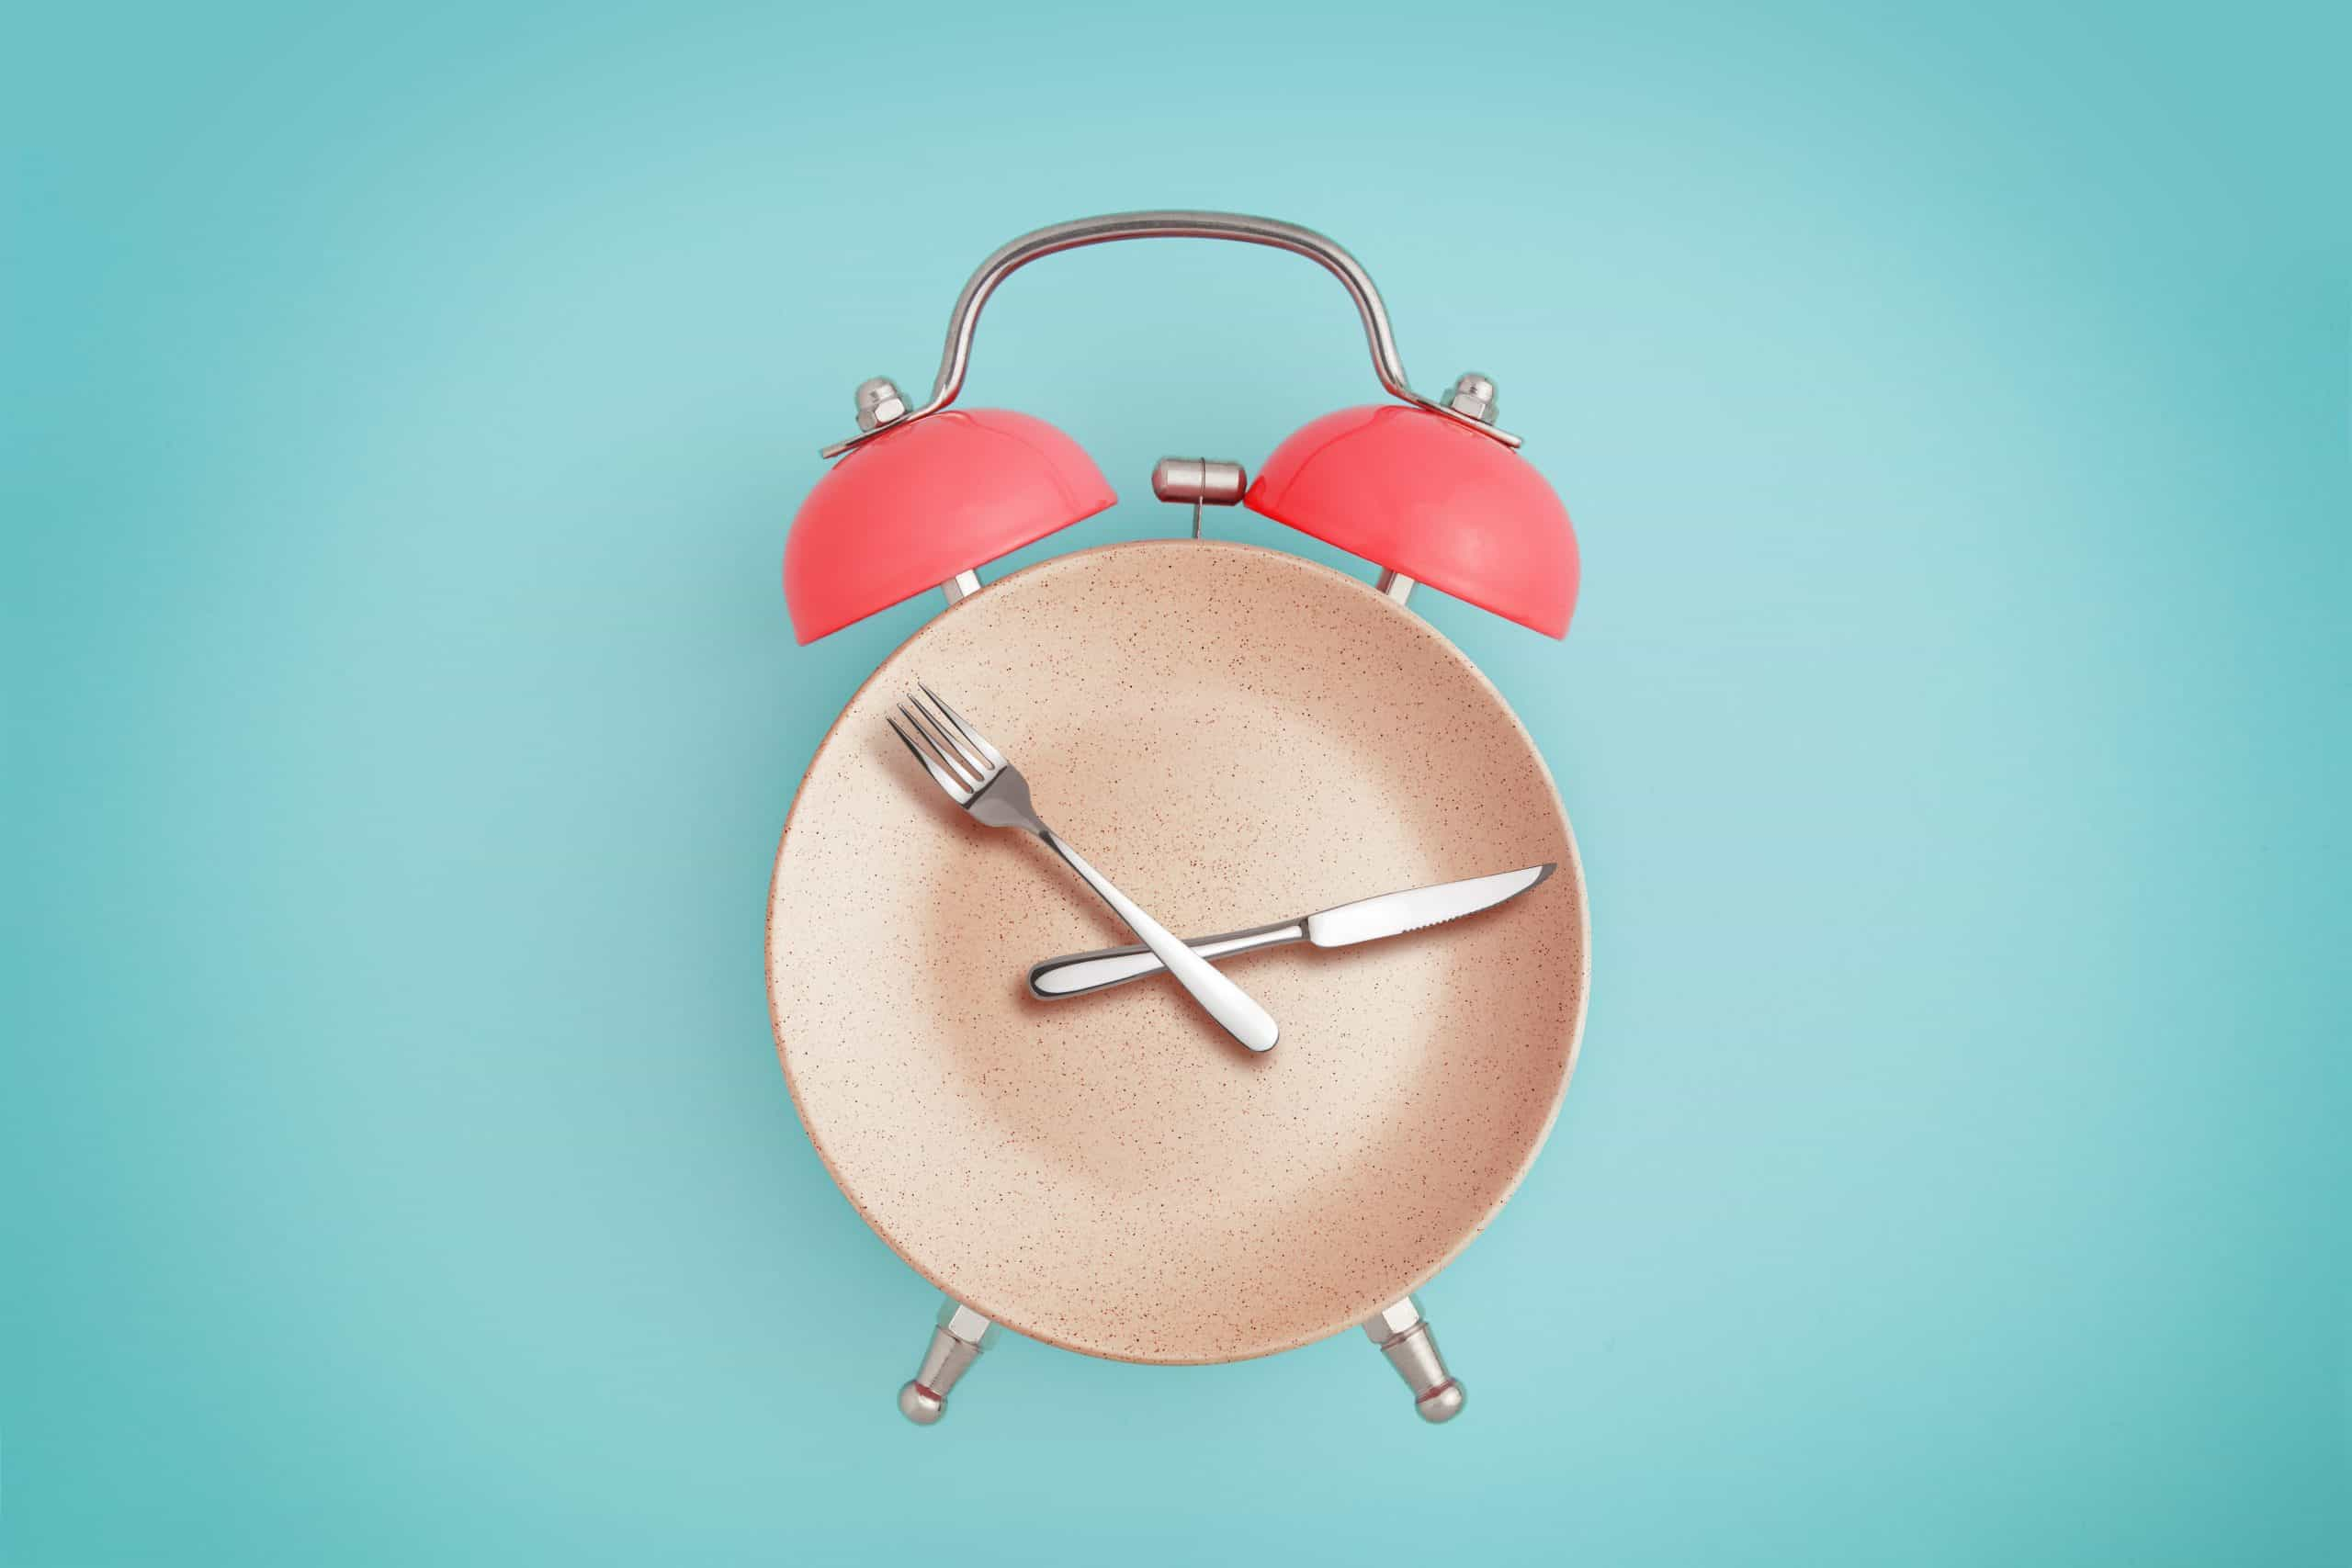 Alarm clock and plate with cutlery . Concept of intermittent fasting